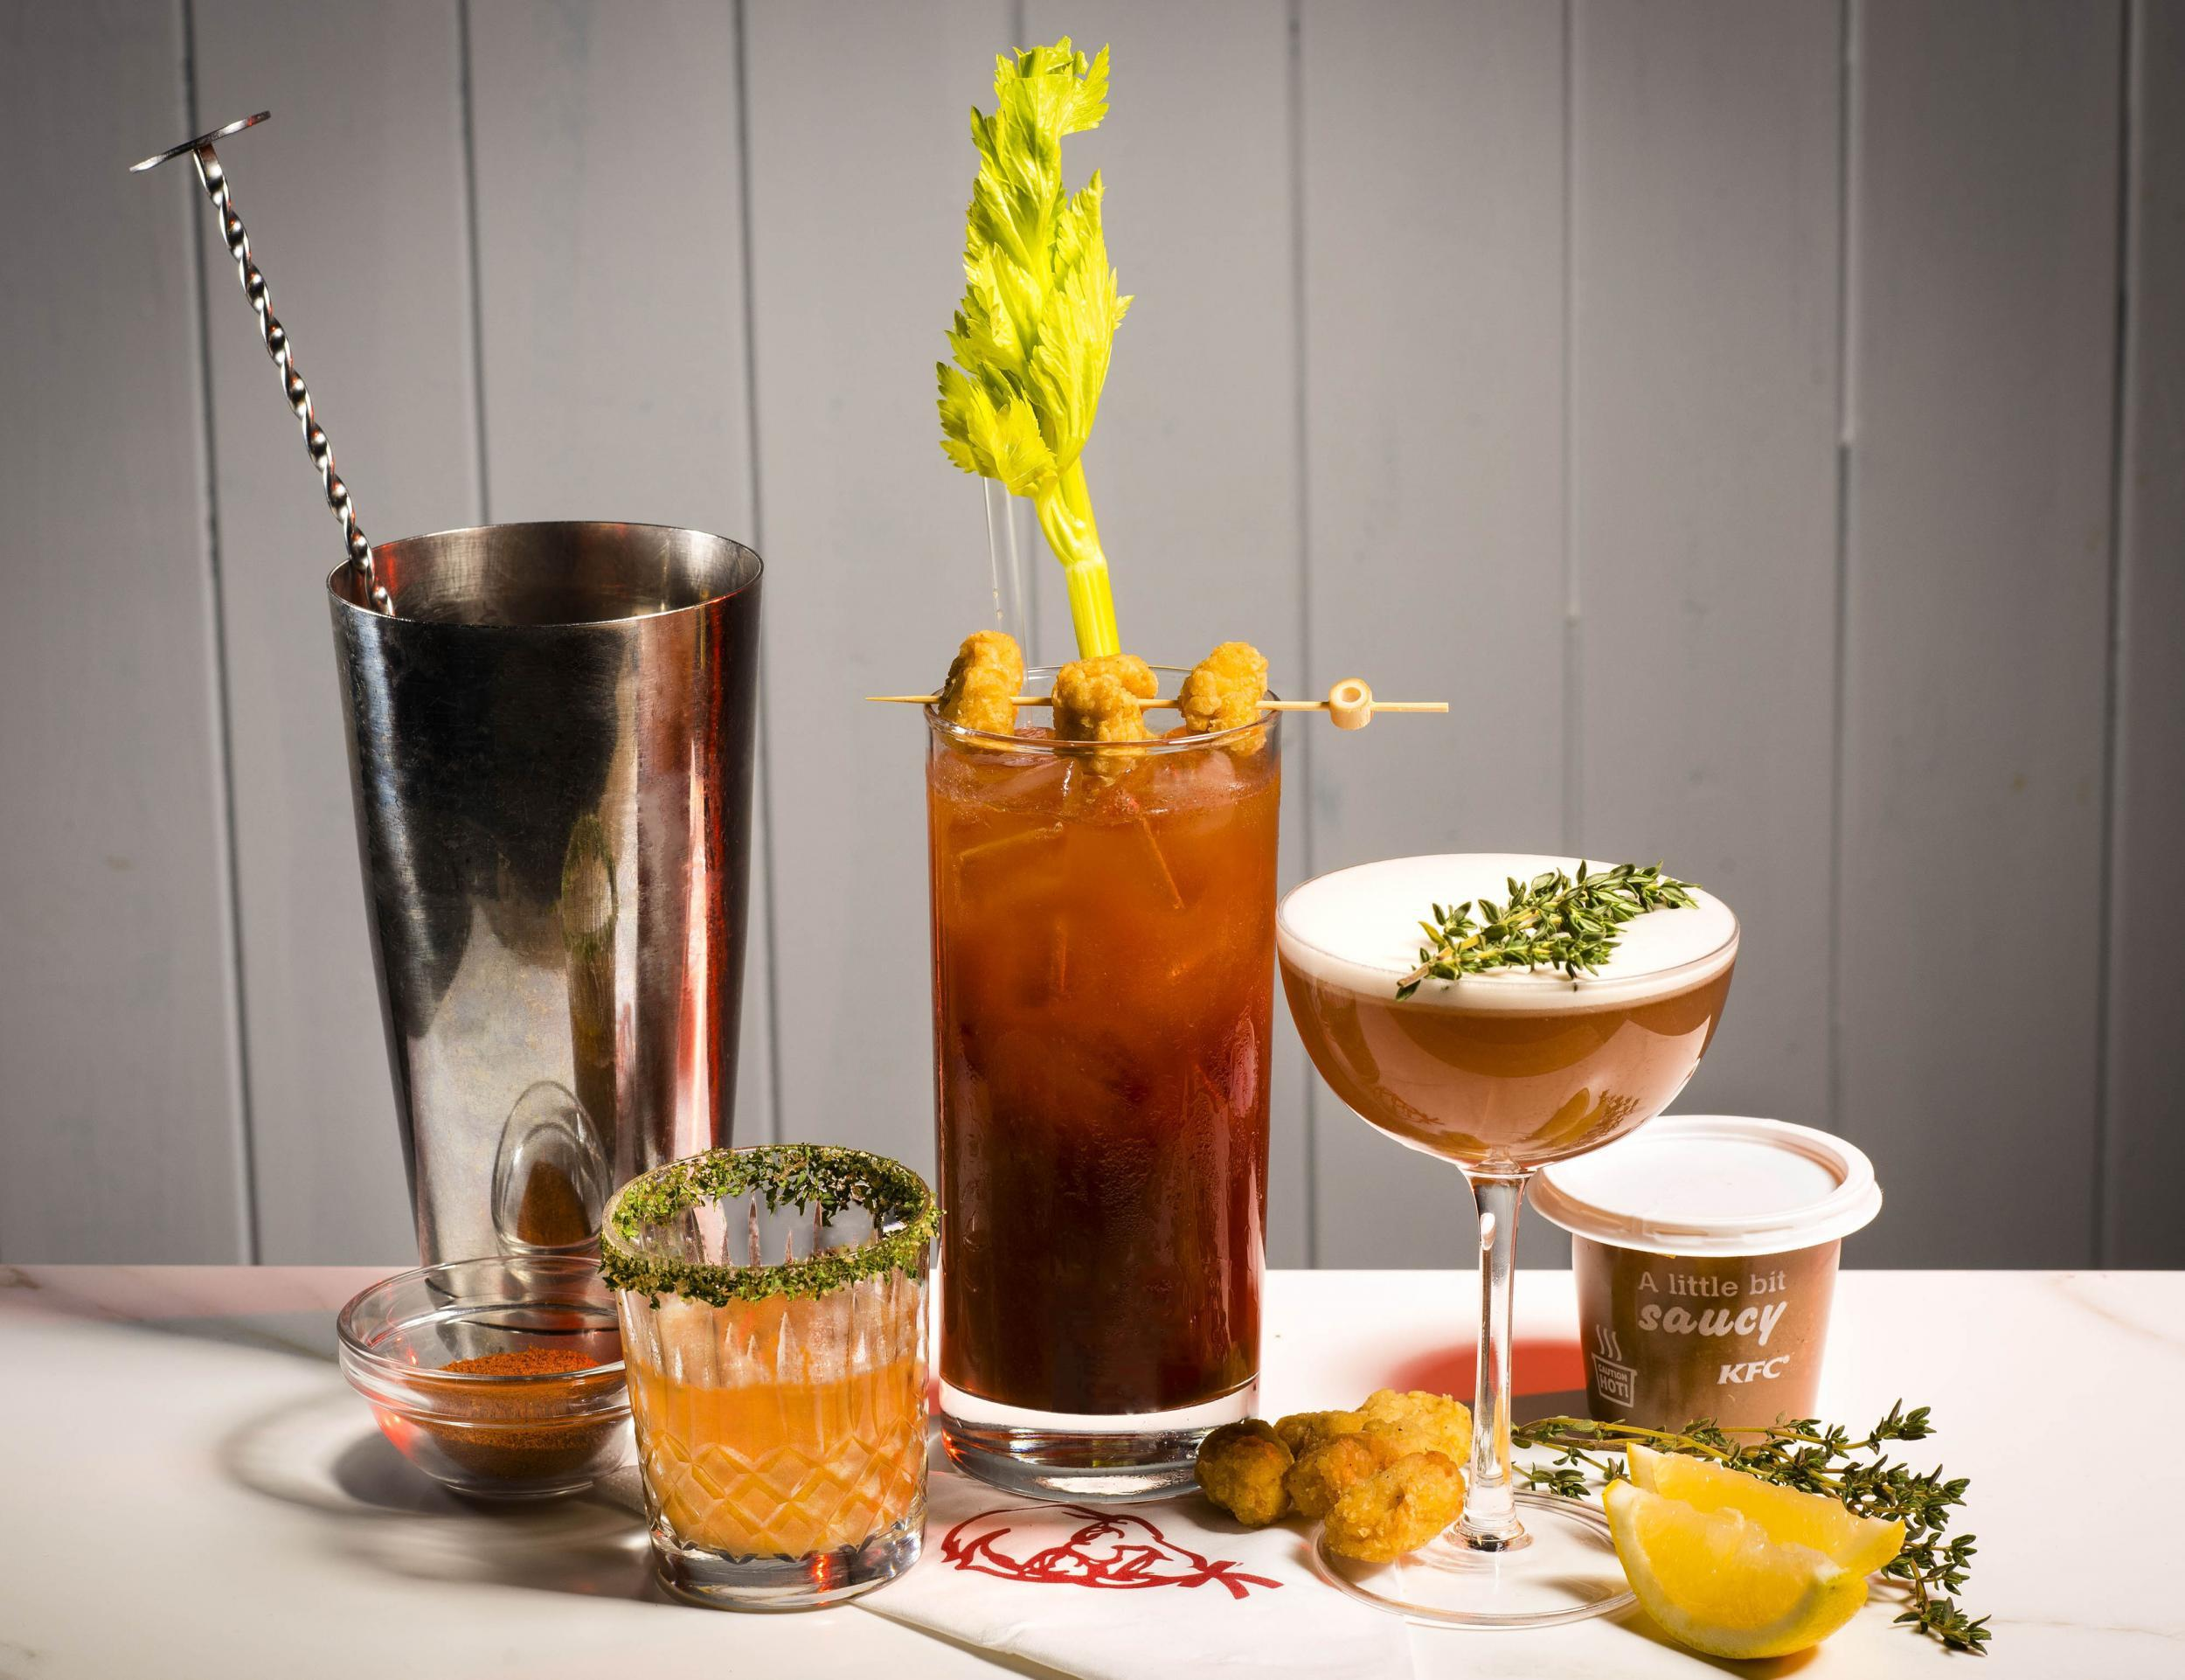 KFC launch classic cocktail recipes infused with its iconic gravy